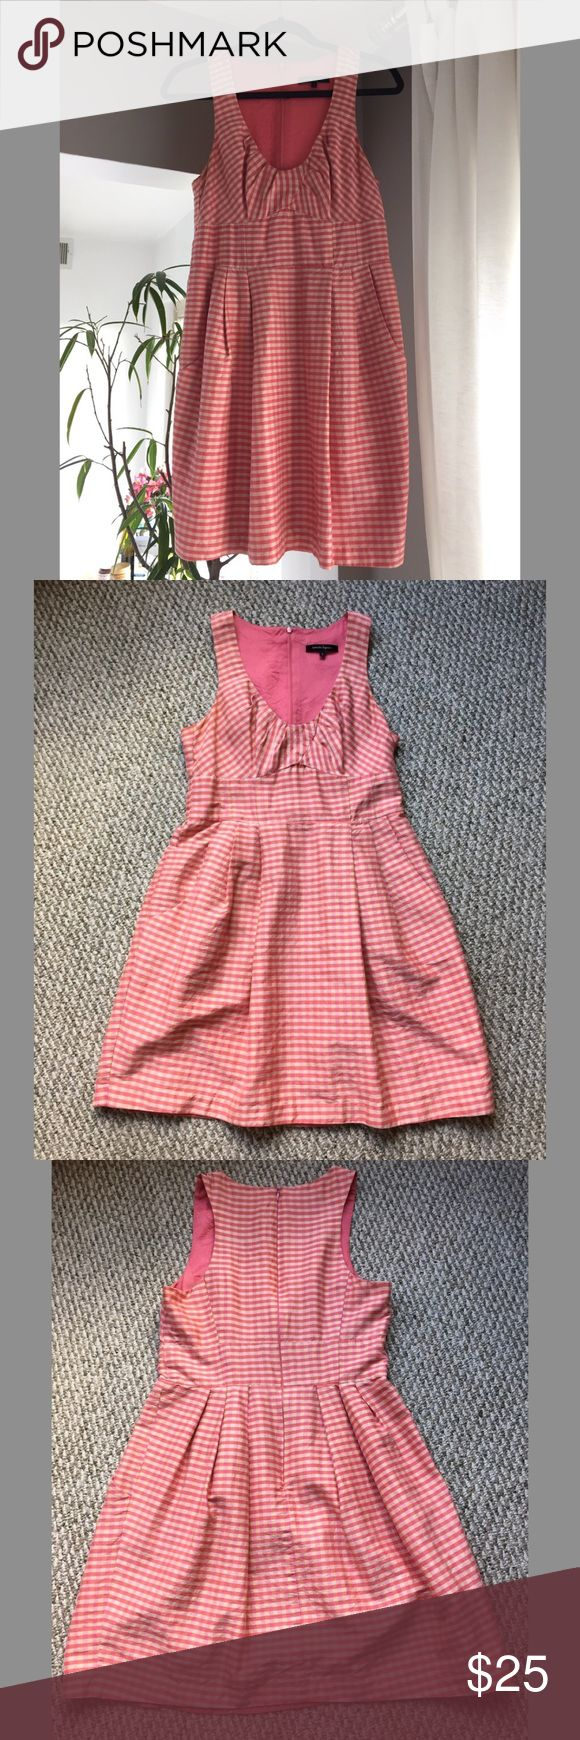 Nanette Lapore pink check pattern sundress Cute casual dress perfect for a weekend picnic. Form-fitting and flattering for pear-shaped figures. Good condition with some signs of wear. Nanette Lepore Dresses Midi